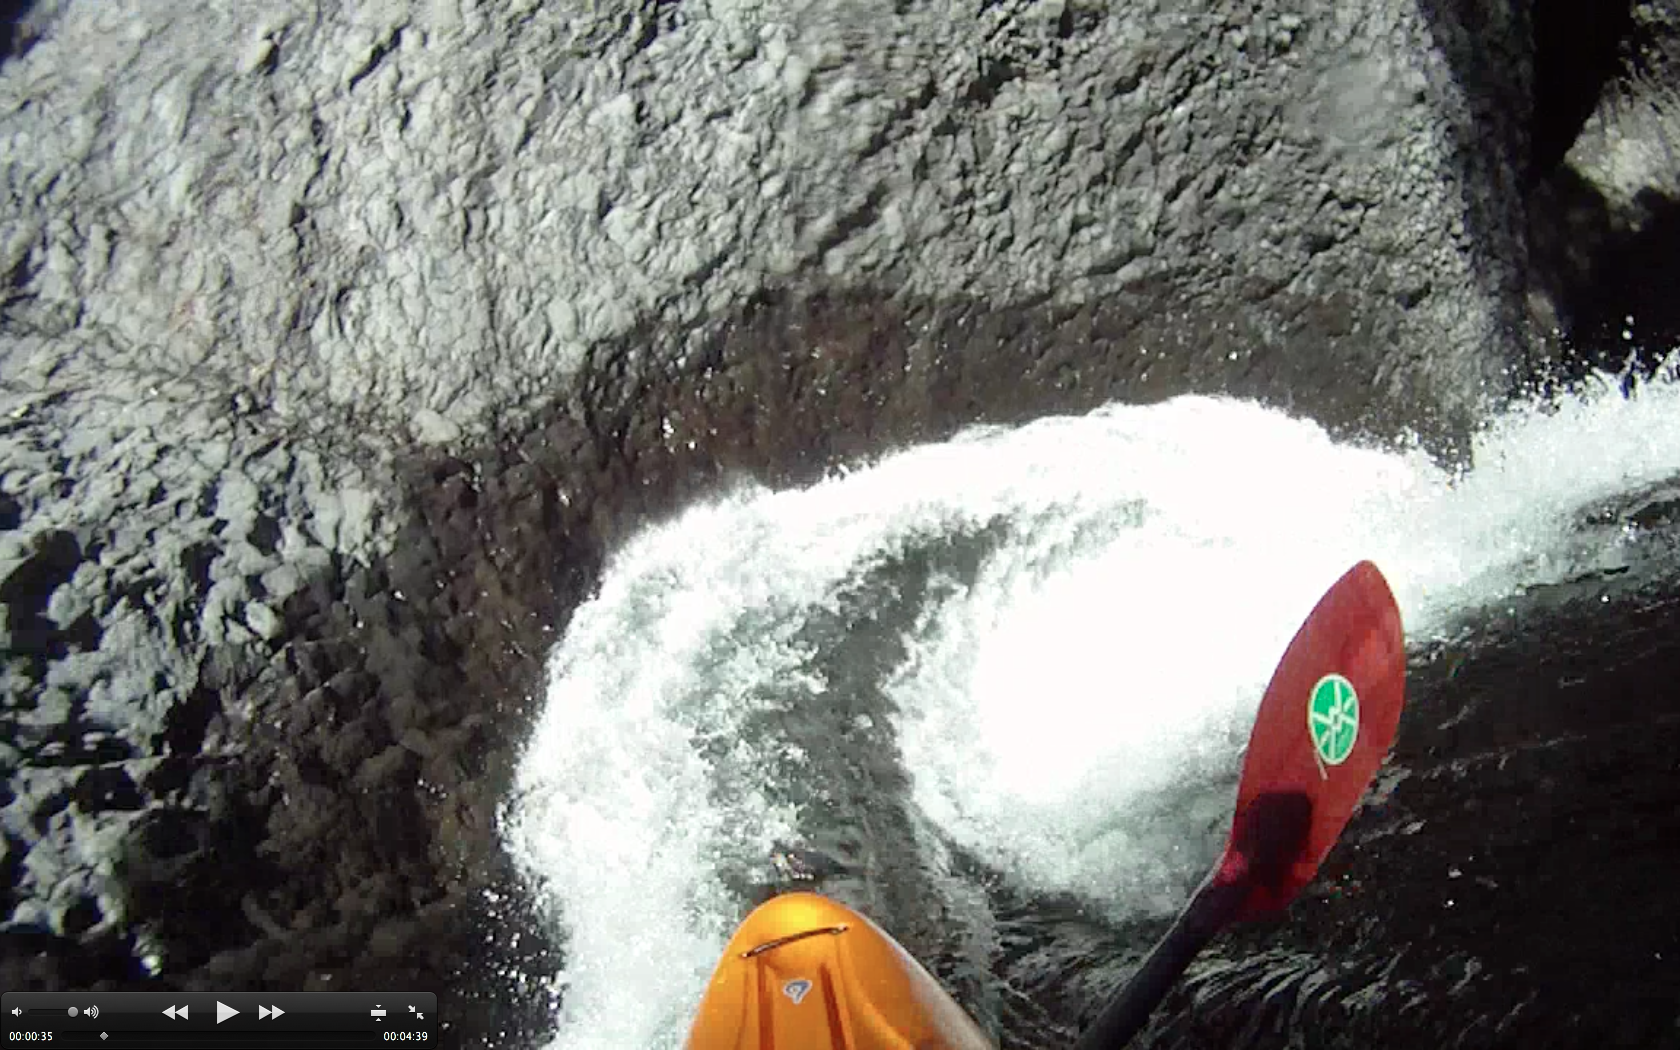 Roaring Fork Kayakers Chile Rio Claro And Pucon